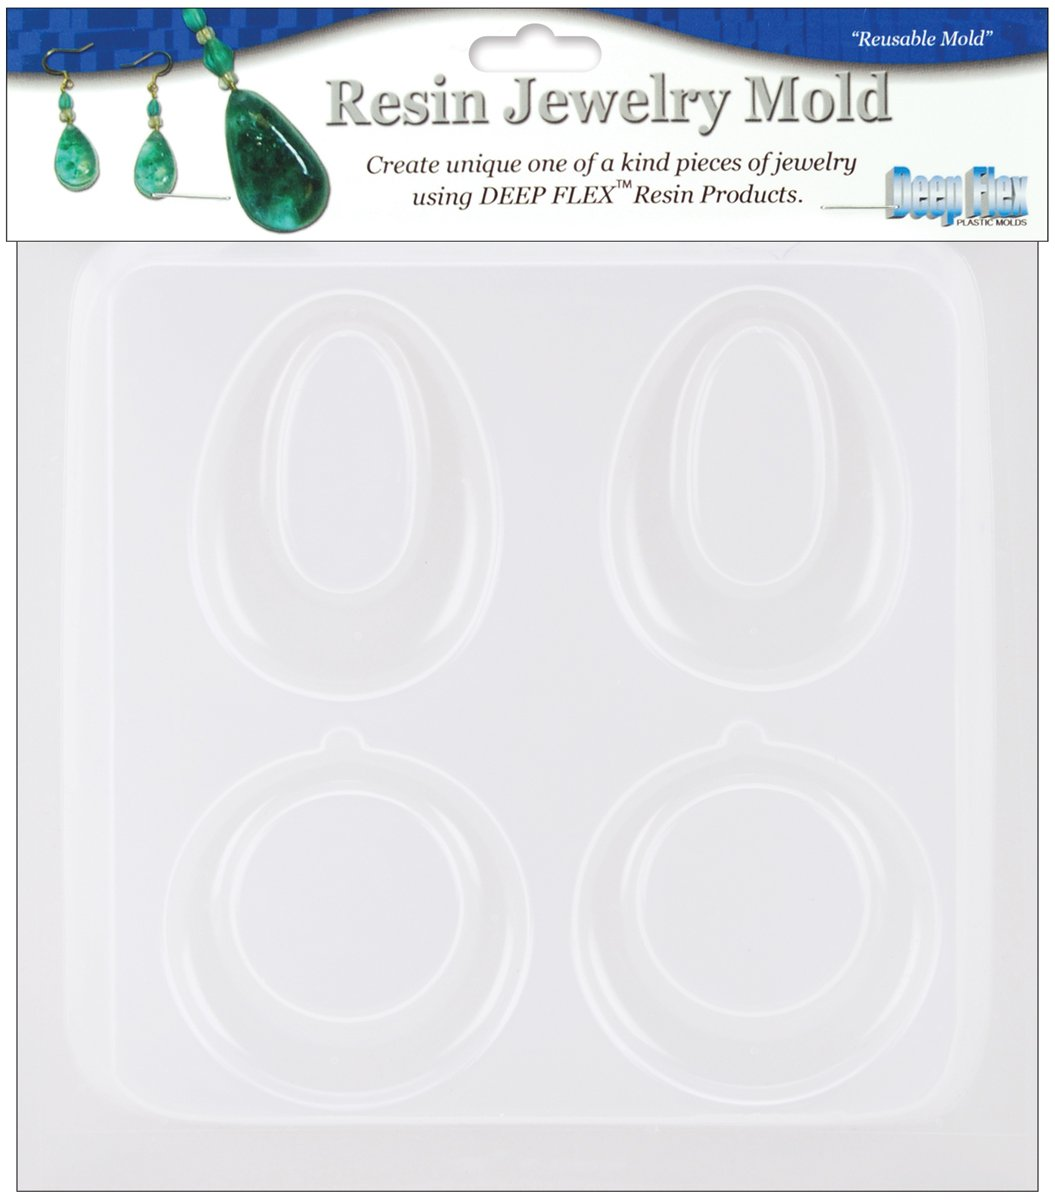 Yaley Resin Jewelry Reusable Plastic Mold, 5-1/2 by 7-Inch, Earrings 2 Pairs 368240